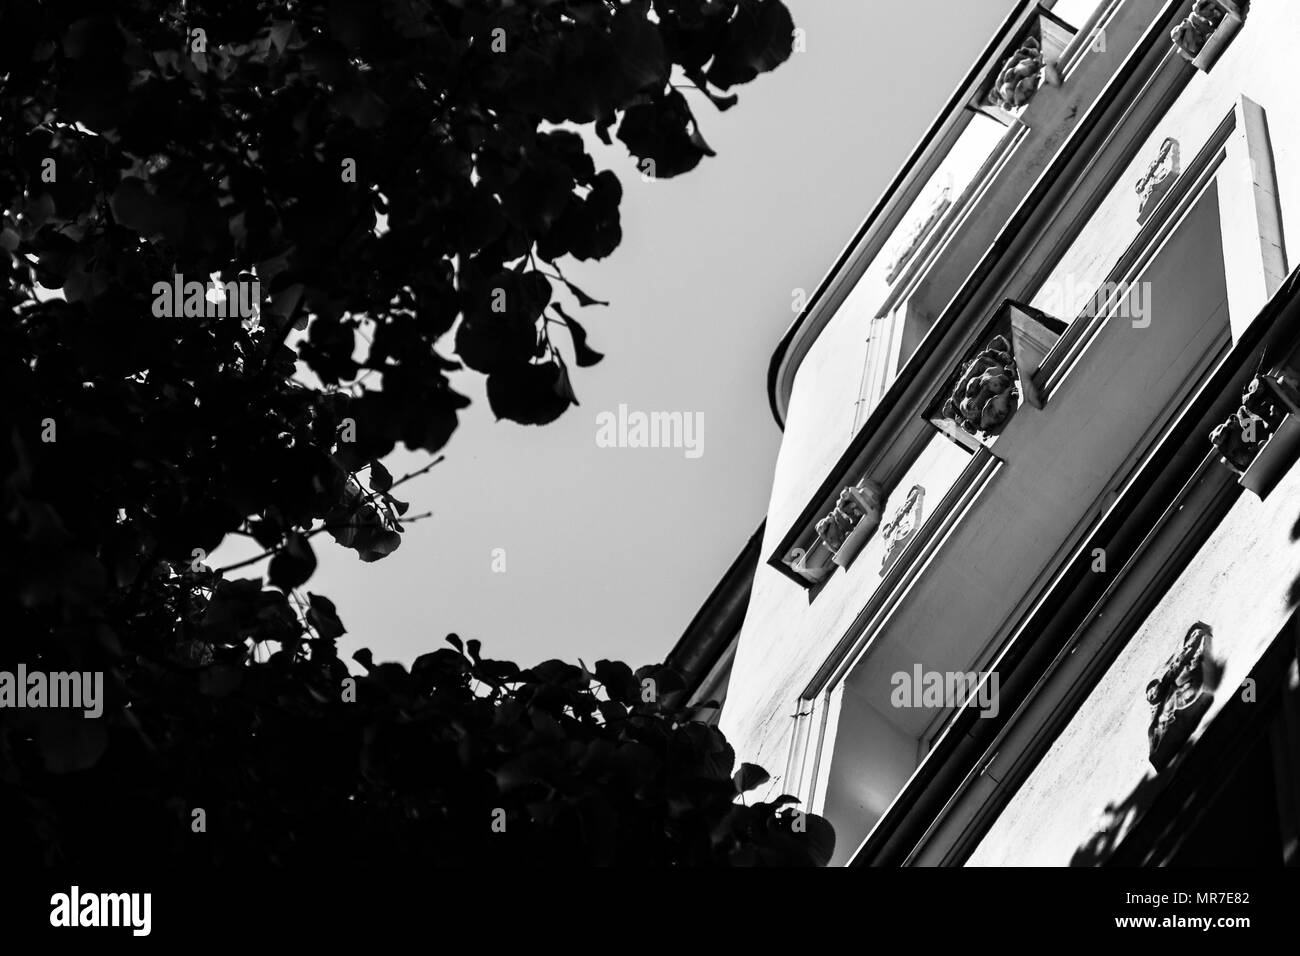 Old european apartment building view from below. black and white. - Stock Image